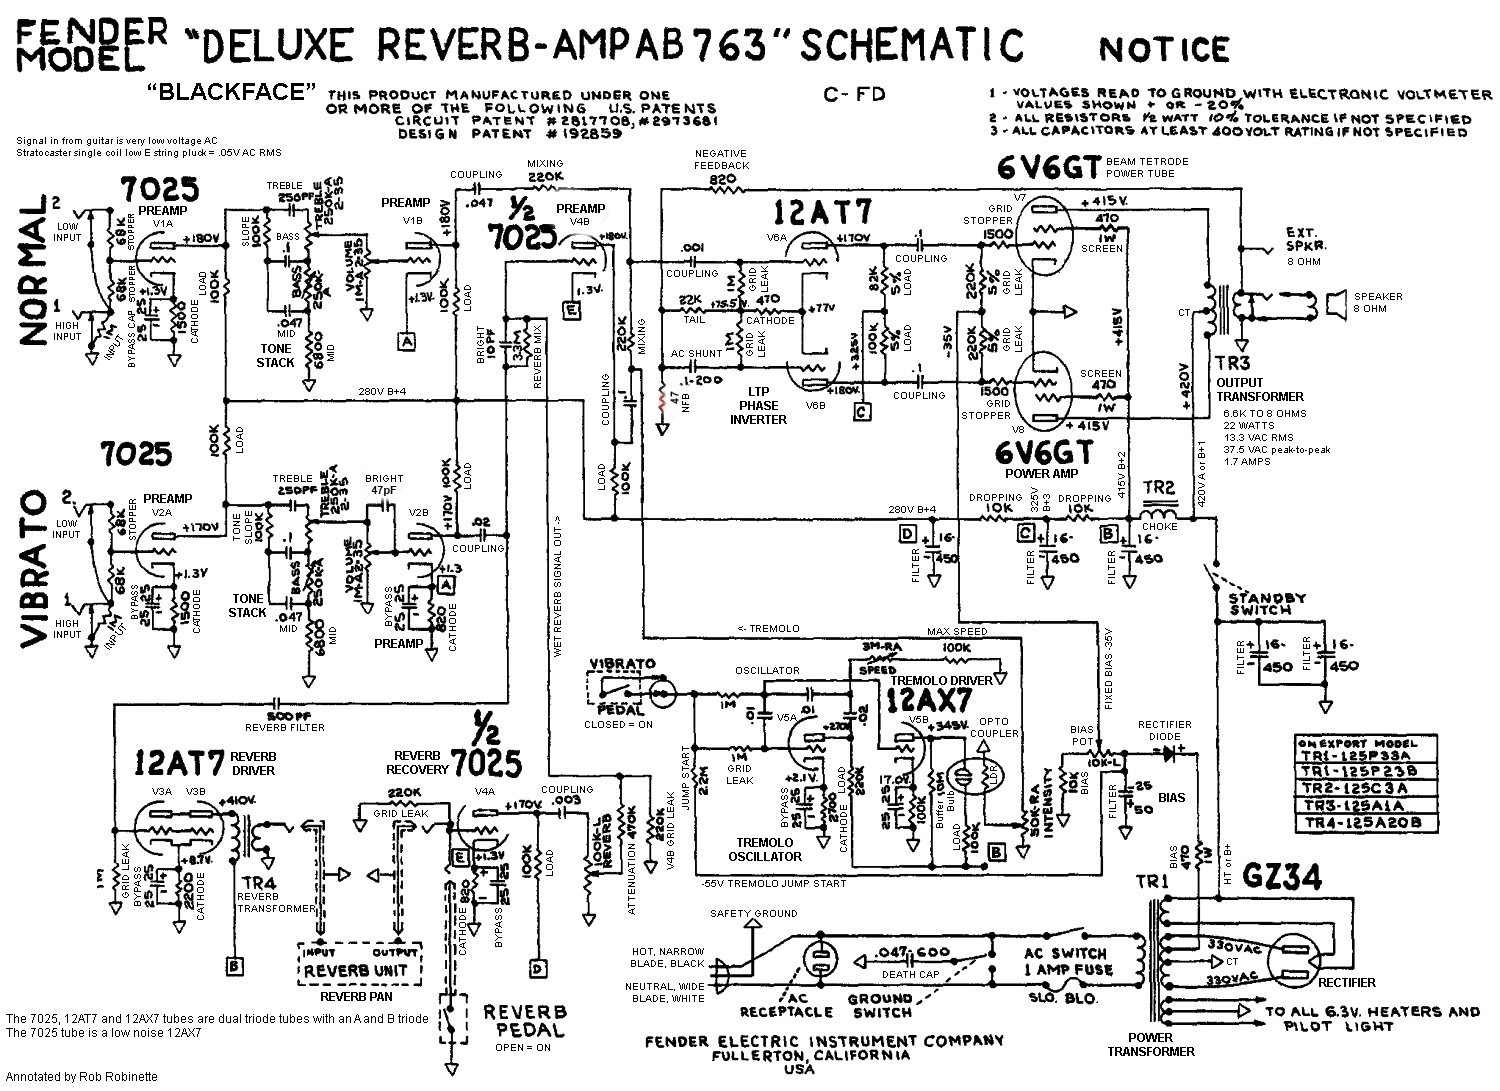 Ab763 Mods Wiring Diagram 2 Humbuckers 3way Lever Switch 1 Volume 0tone 001 Click The Image For Full Size Schematic Every Component Function Is Listed